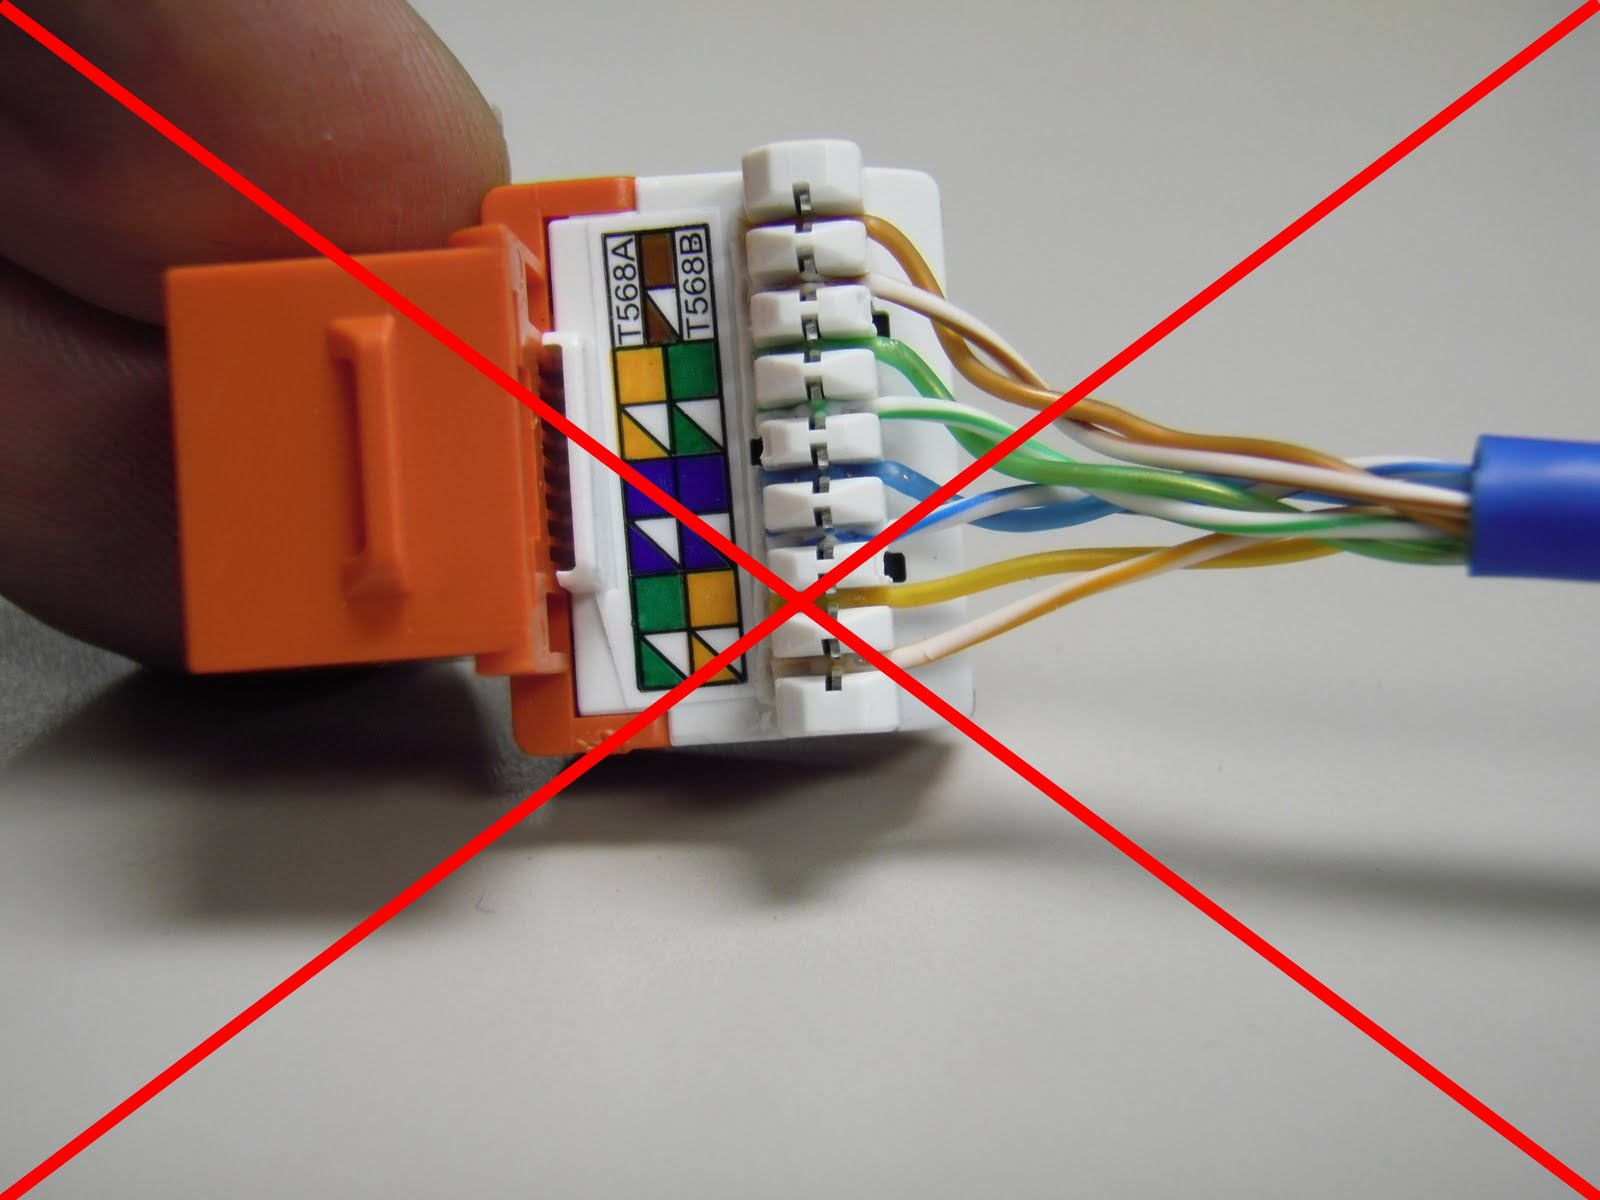 CAT5E+ER+JACK+PUNCHED+WRONG+RED+X the trench how to punch down cat5e cat6 keystone jacks cat6 wall socket wiring diagram at creativeand.co